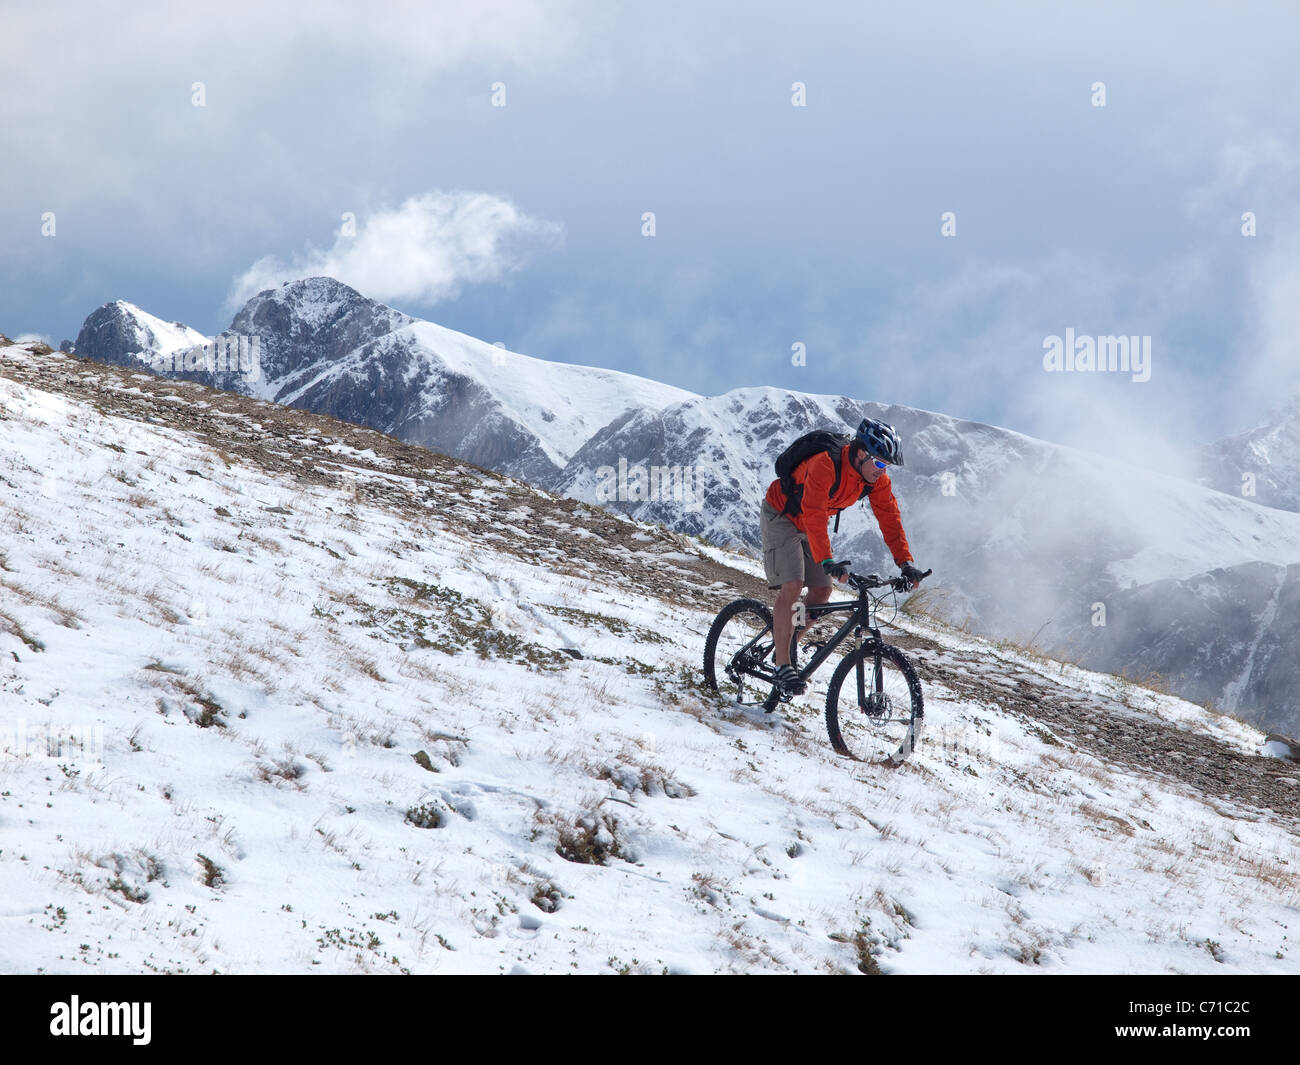 A mountain biker rides through the snow at Kronplatz, mountains and clouds in the background. - Stock Image